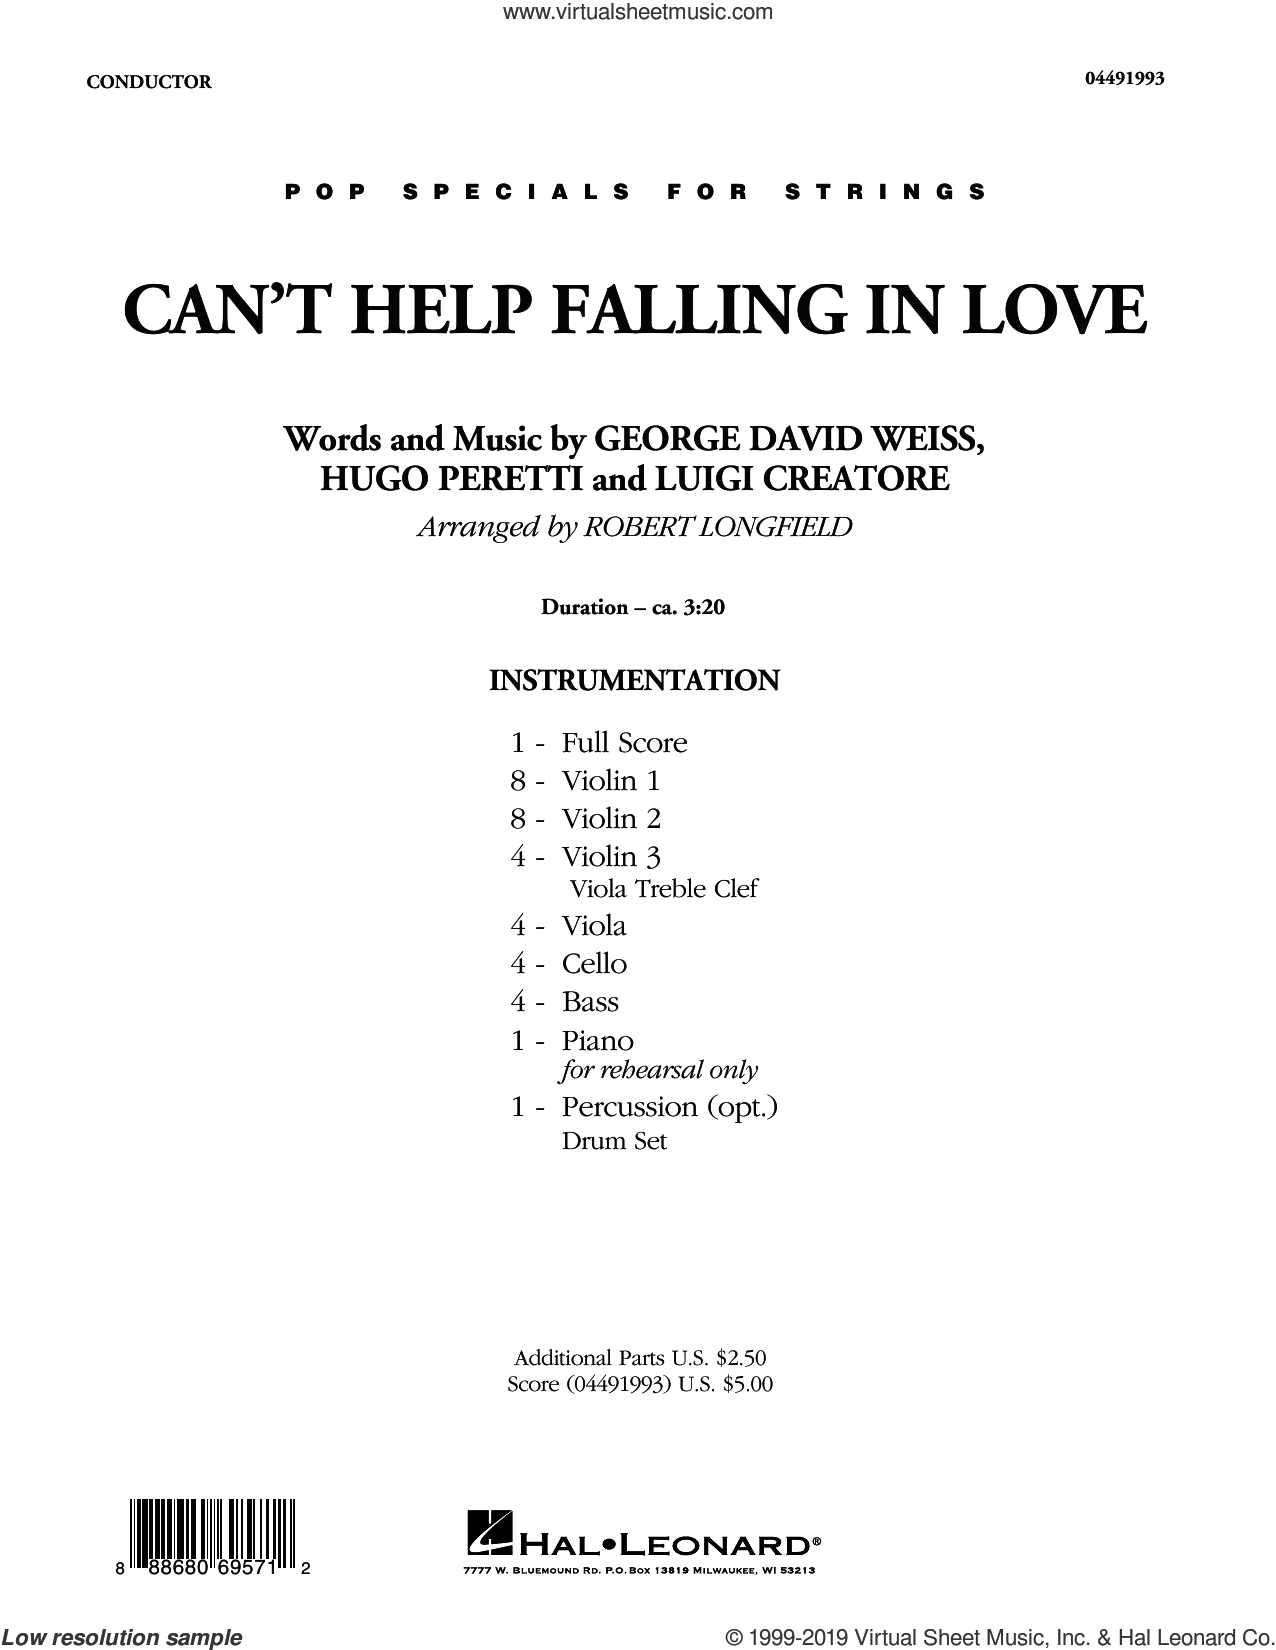 Can't Help Falling in Love (COMPLETE) sheet music for orchestra by Elvis Presley, George David Weiss, Hugo Peretti, Luigi Creatore, Robert Longfield and UB40, wedding score, intermediate skill level